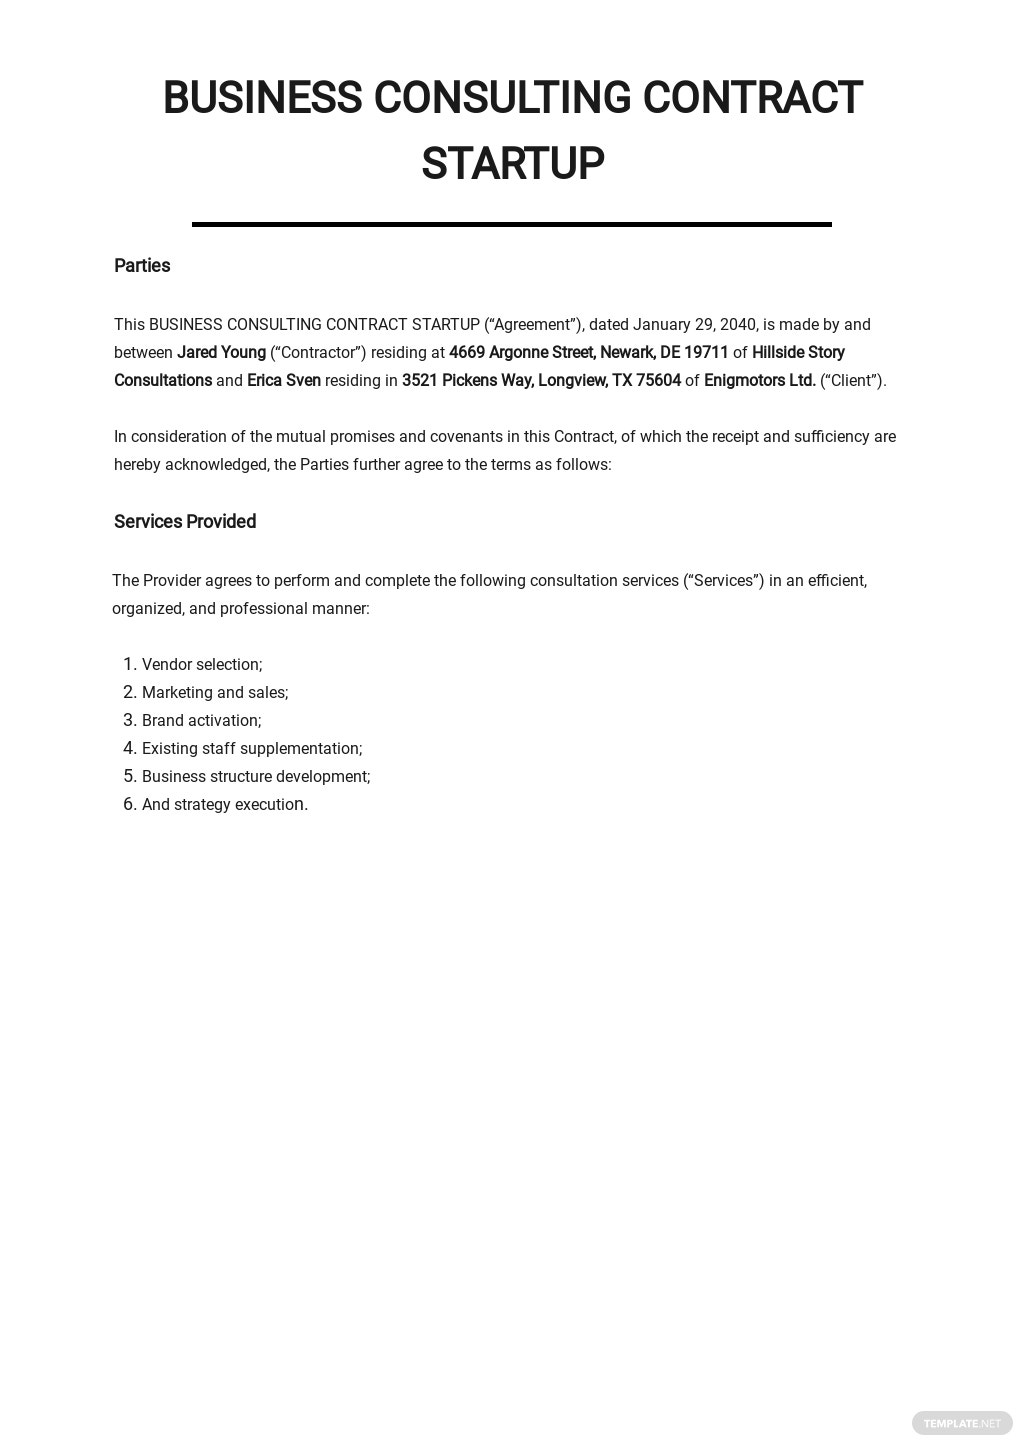 Business Consulting Contract Startup Template